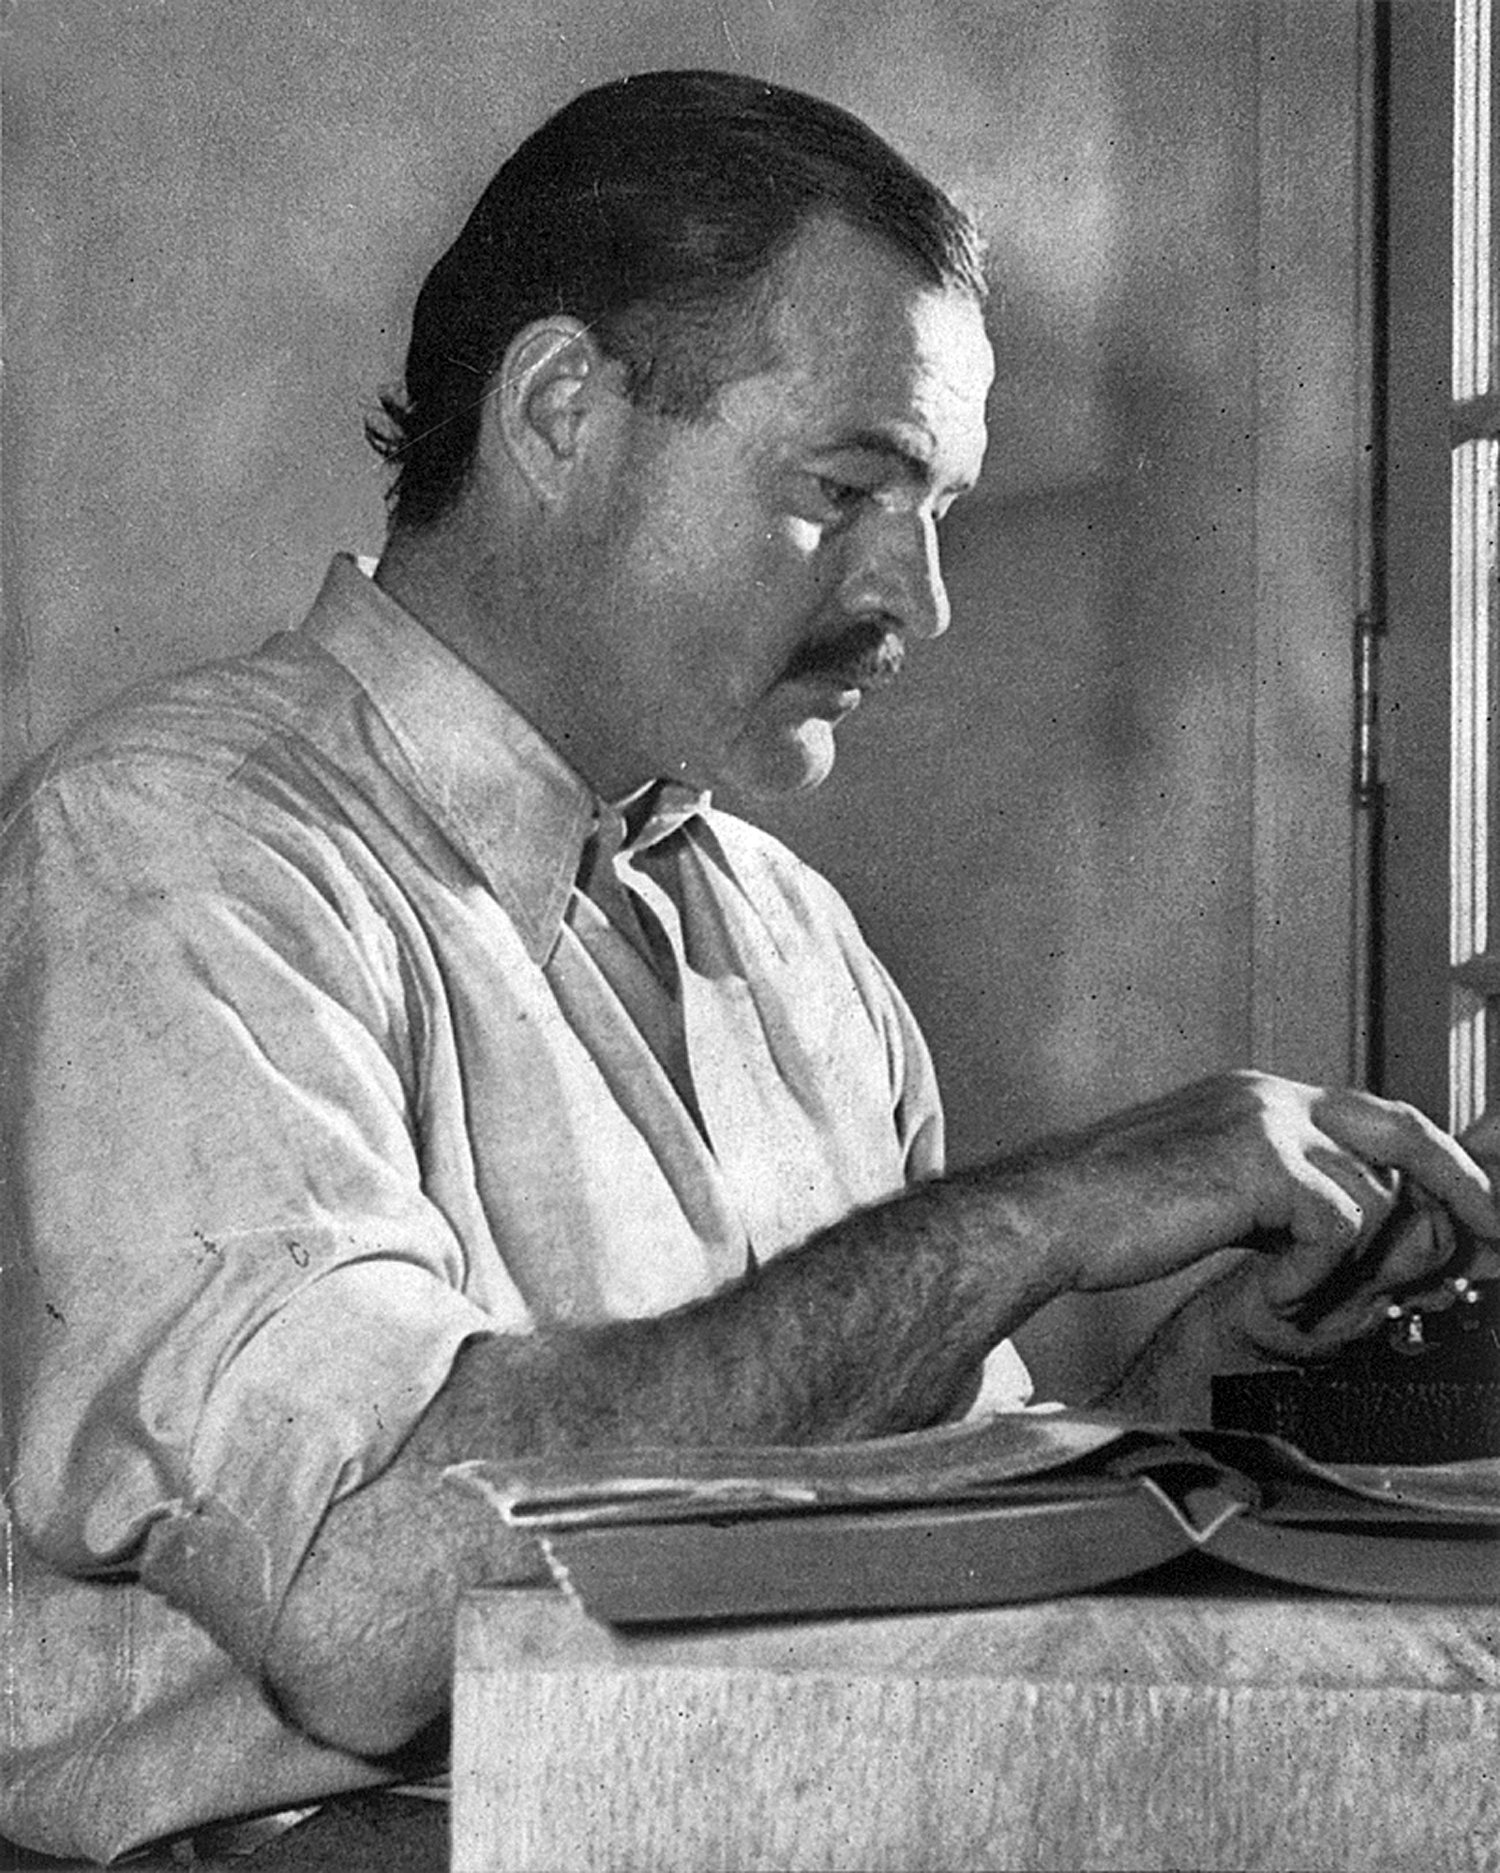 Ernest Hemingway working on his book ''For Whom the Bell Tolls'' at the Sun Valley Lodge, Idaho in December 1939